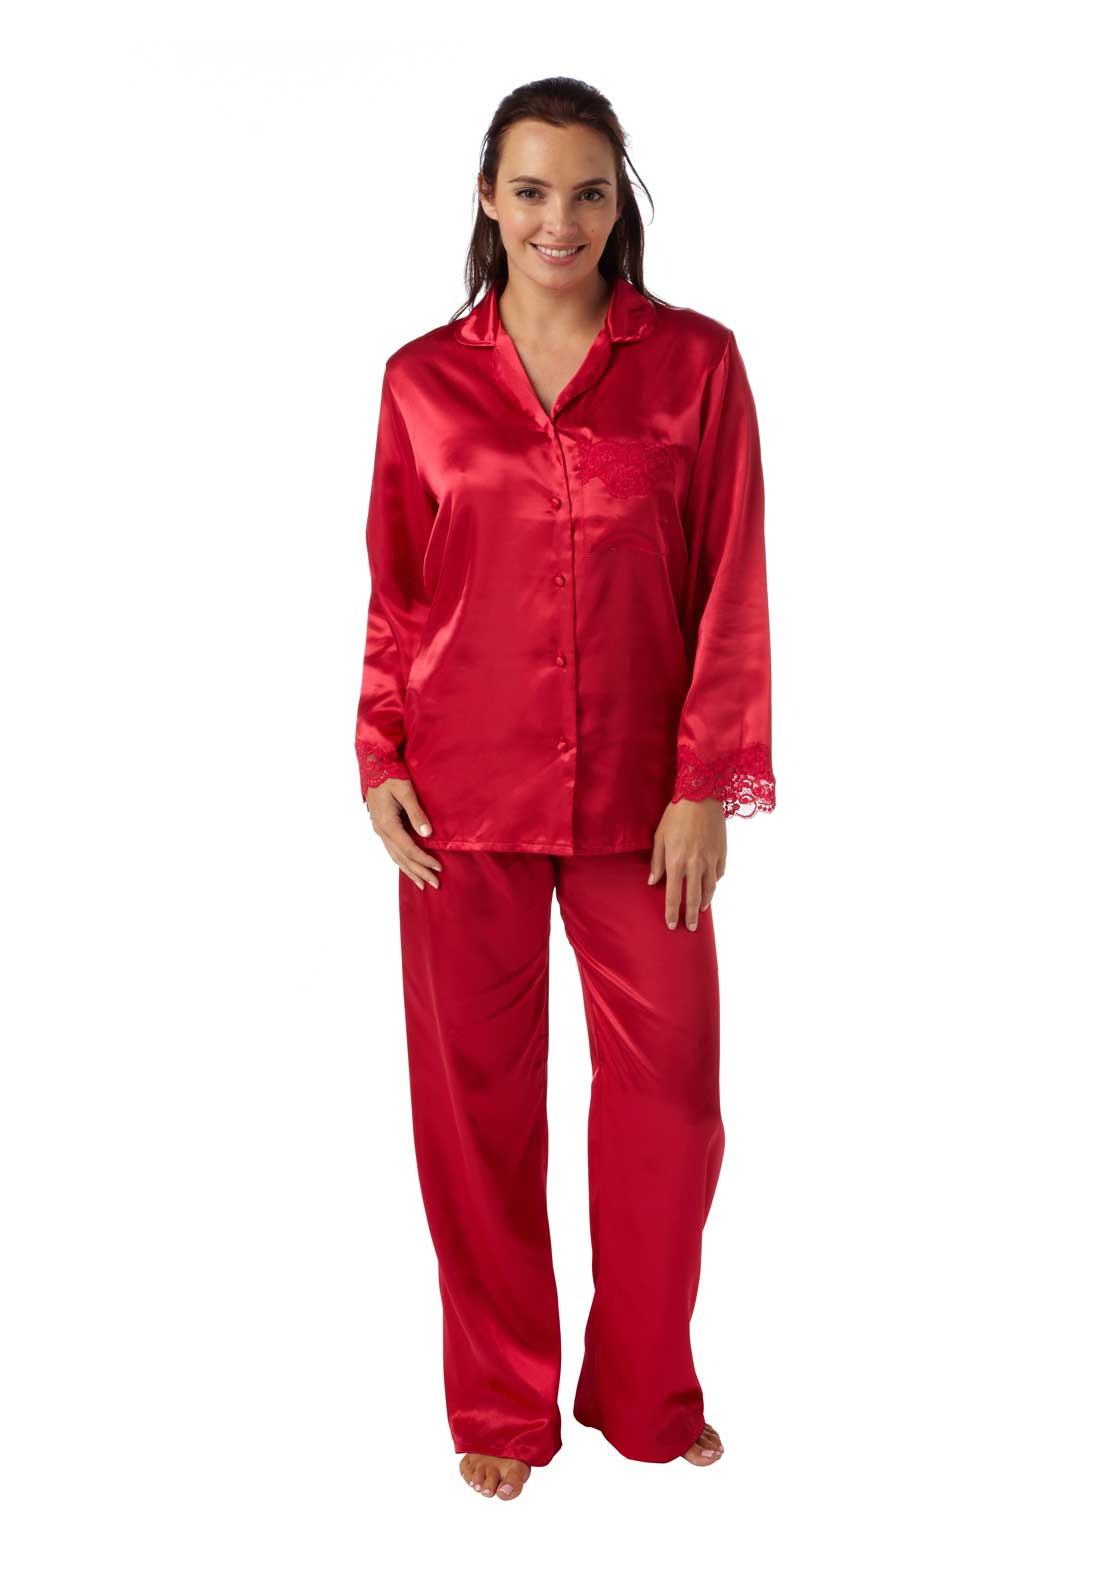 Indigo Sky Satin Pyjama Set, Red